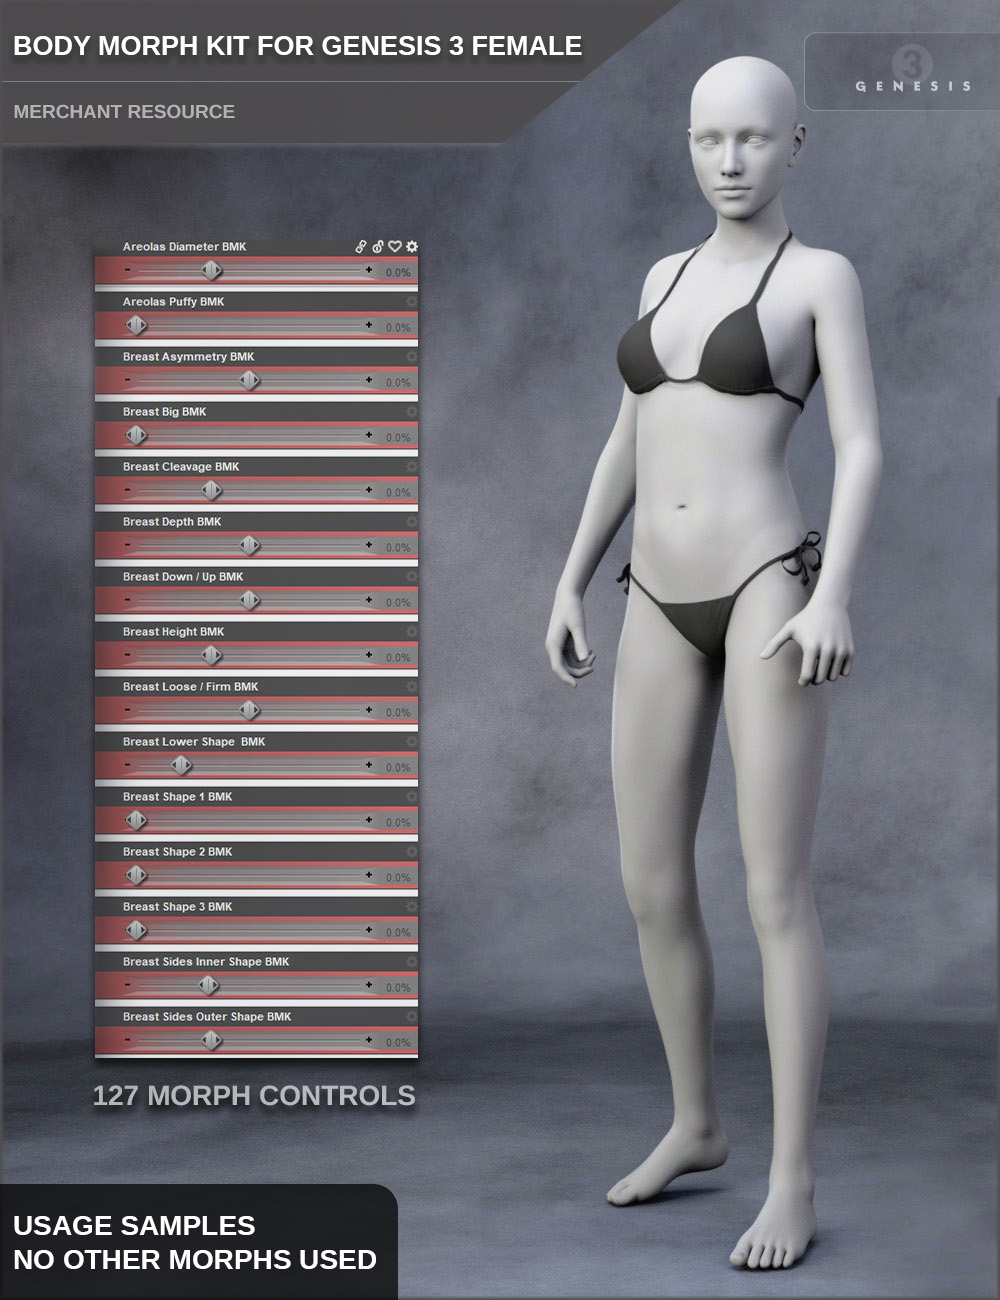 Body Morph Kit for Genesis 3 Female and Merchant Resource by: SF-Design, 3D Models by Daz 3D